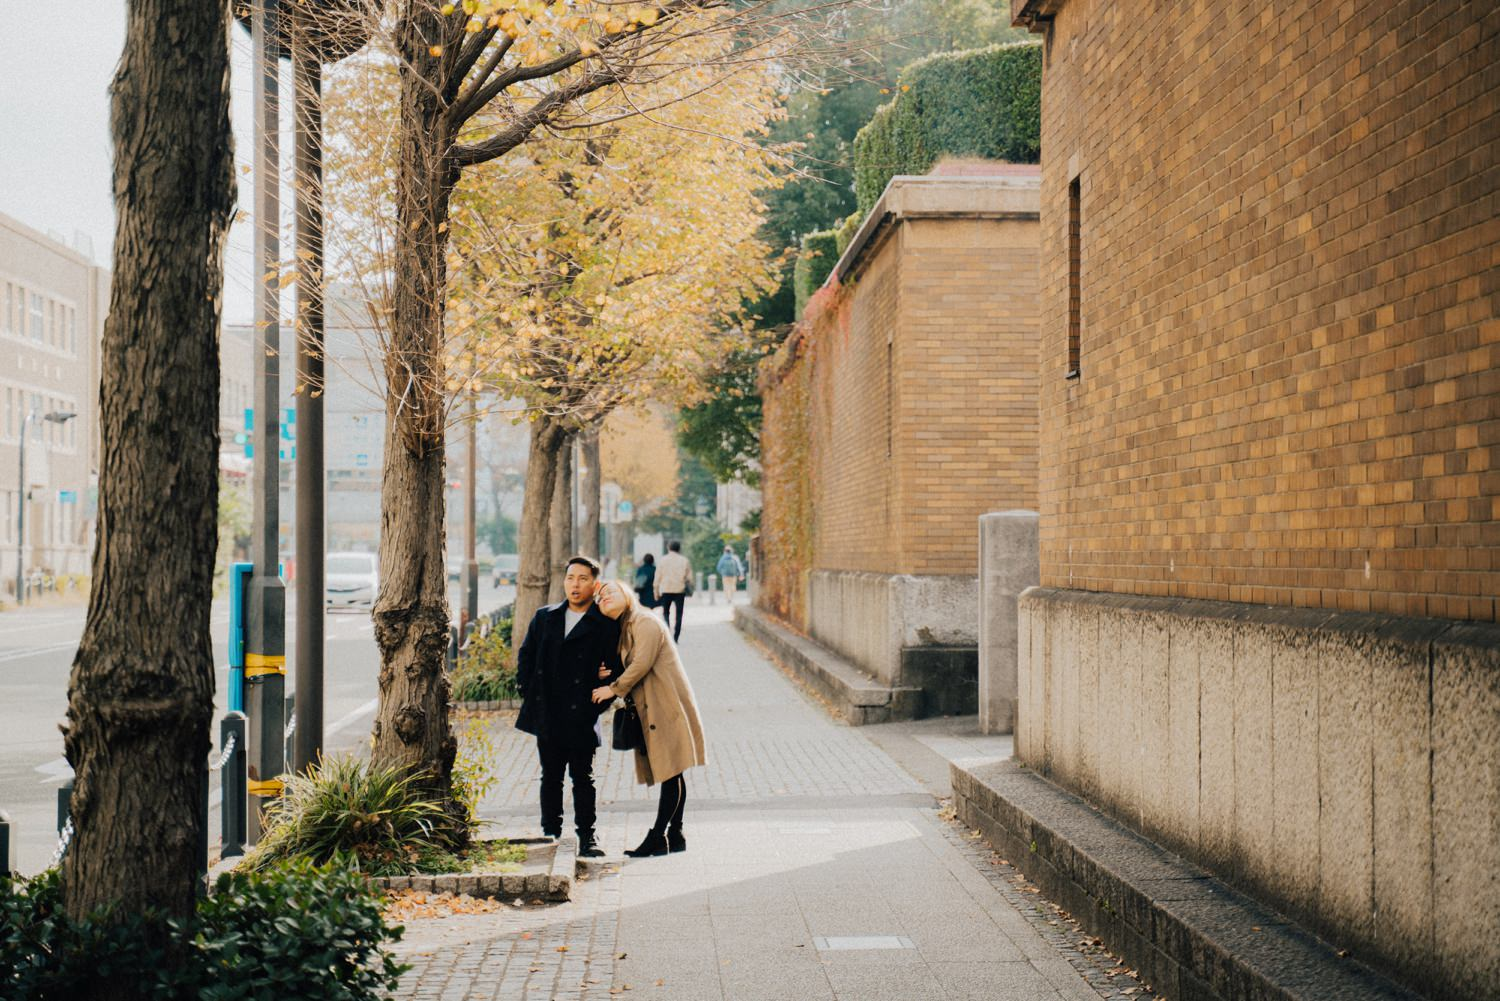 Oak St. Studios - Sheanne and Bojo Tokyo Japan Engagement Session